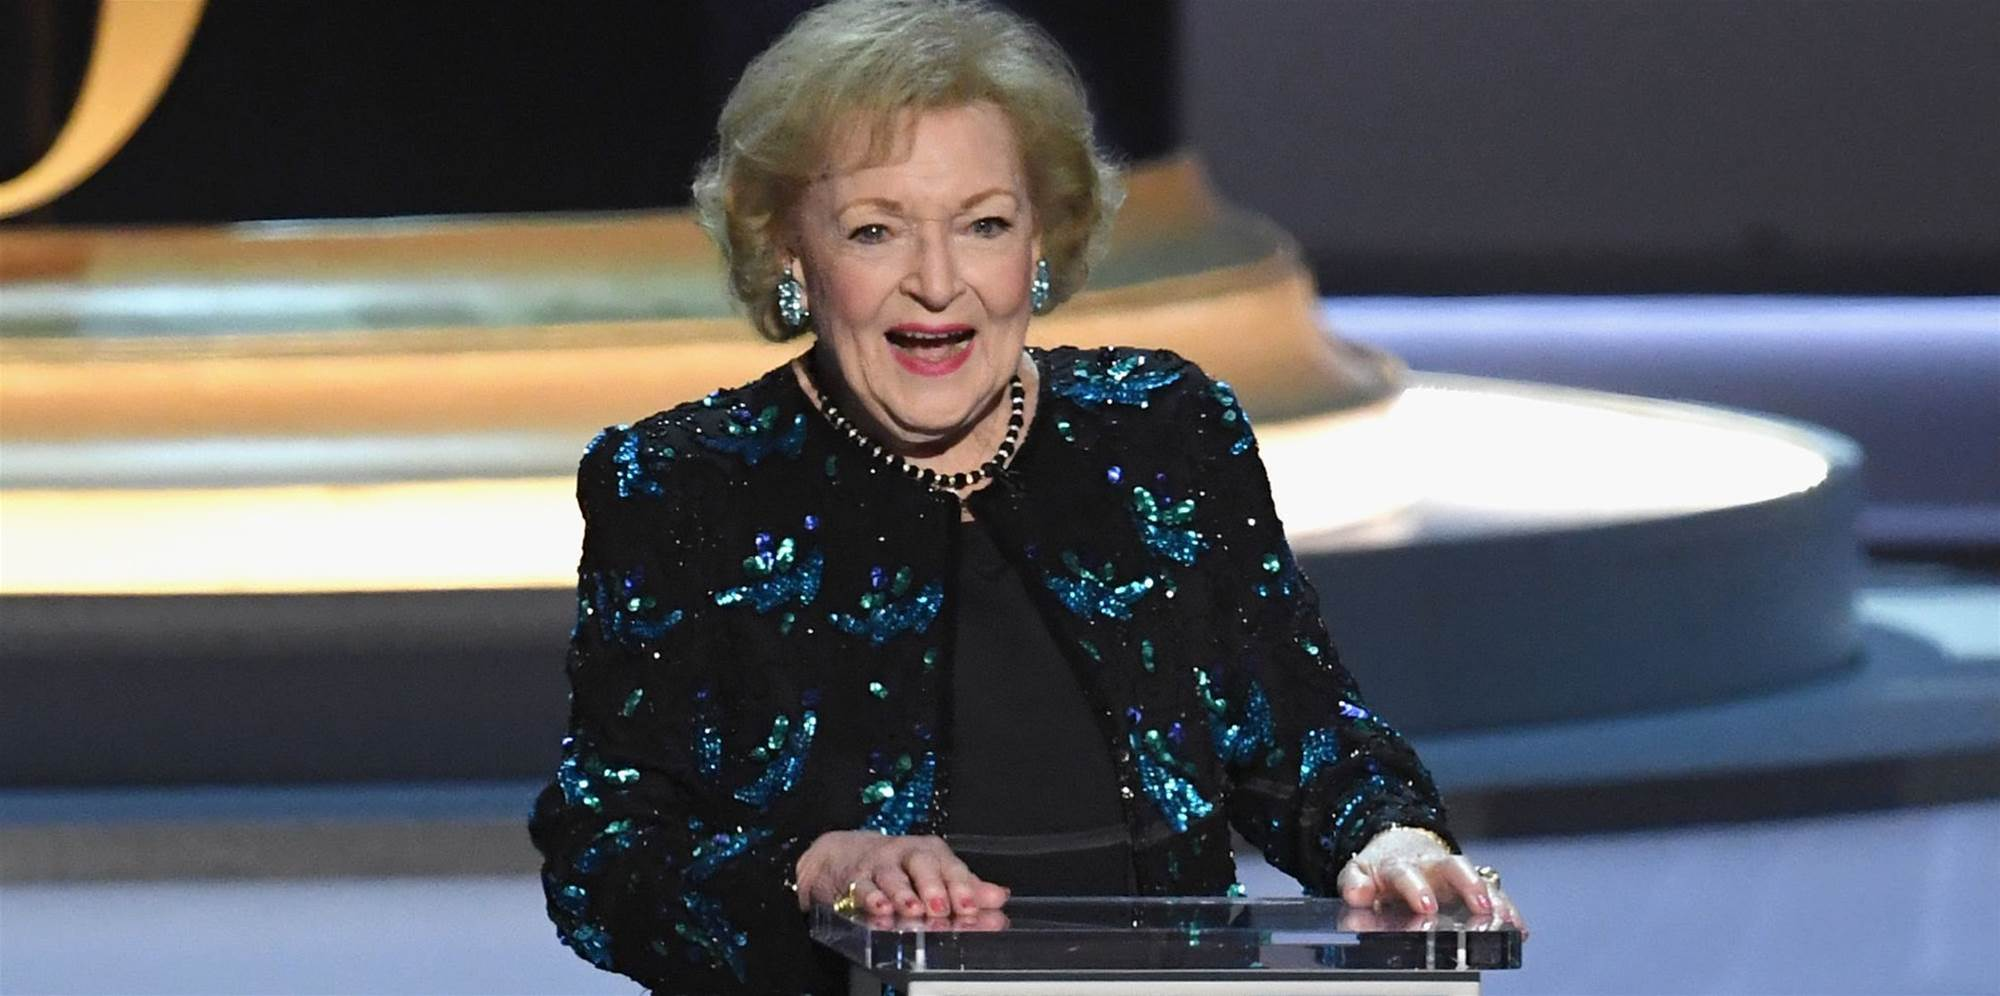 Betty White's Emmys Speech Proved Humor Is the Secret to Longevity